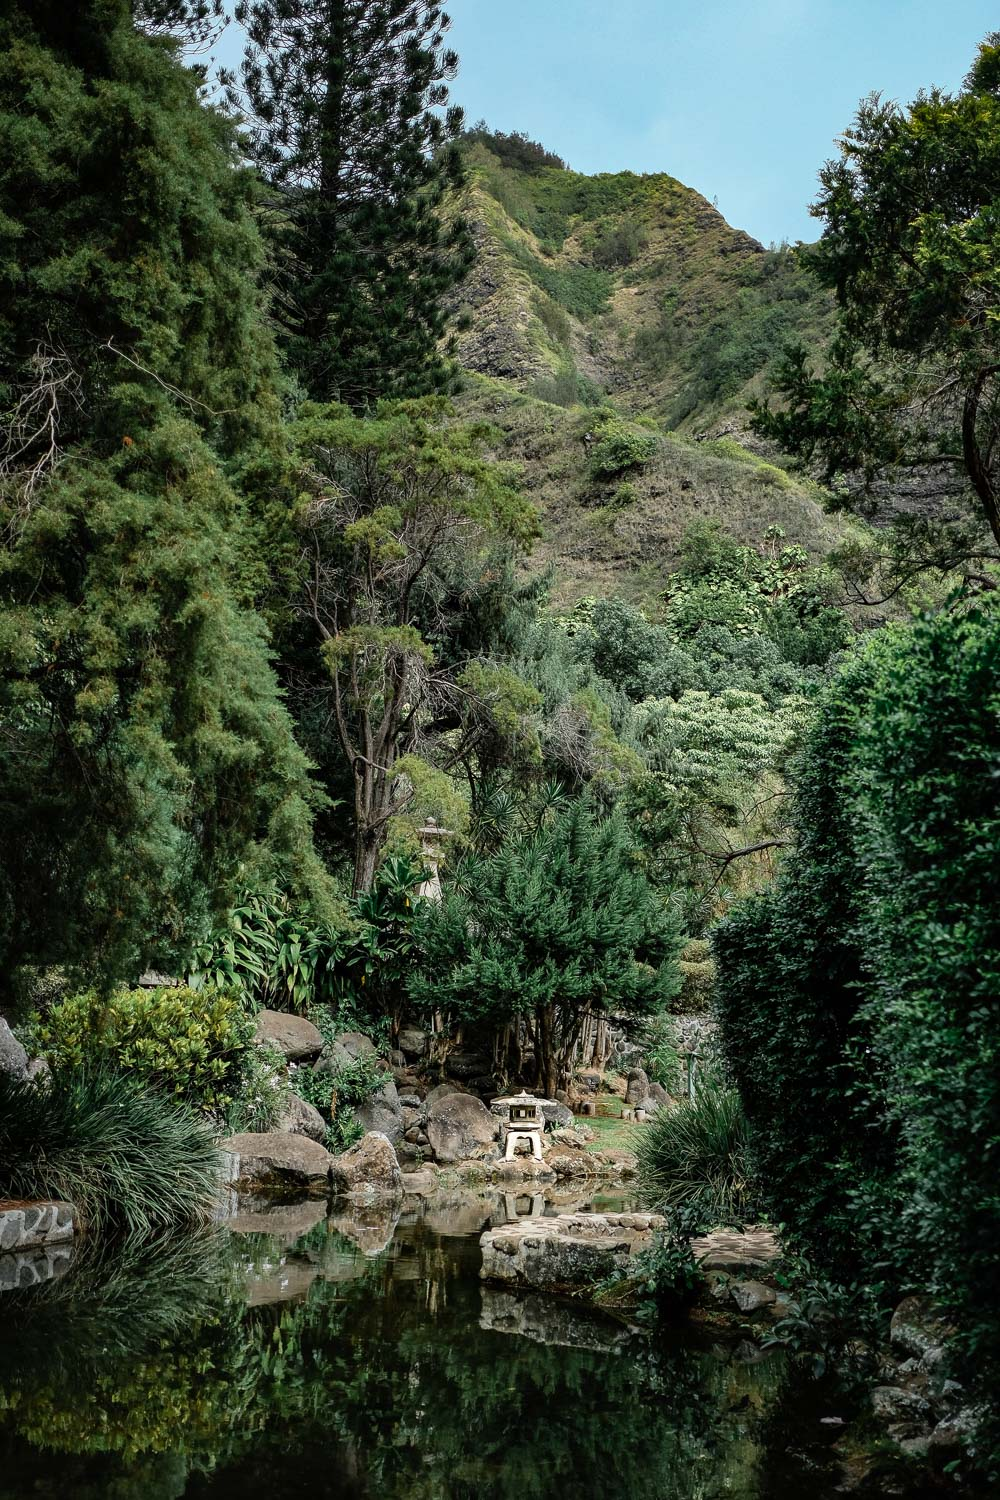 A Japanese garden near Iao Valley